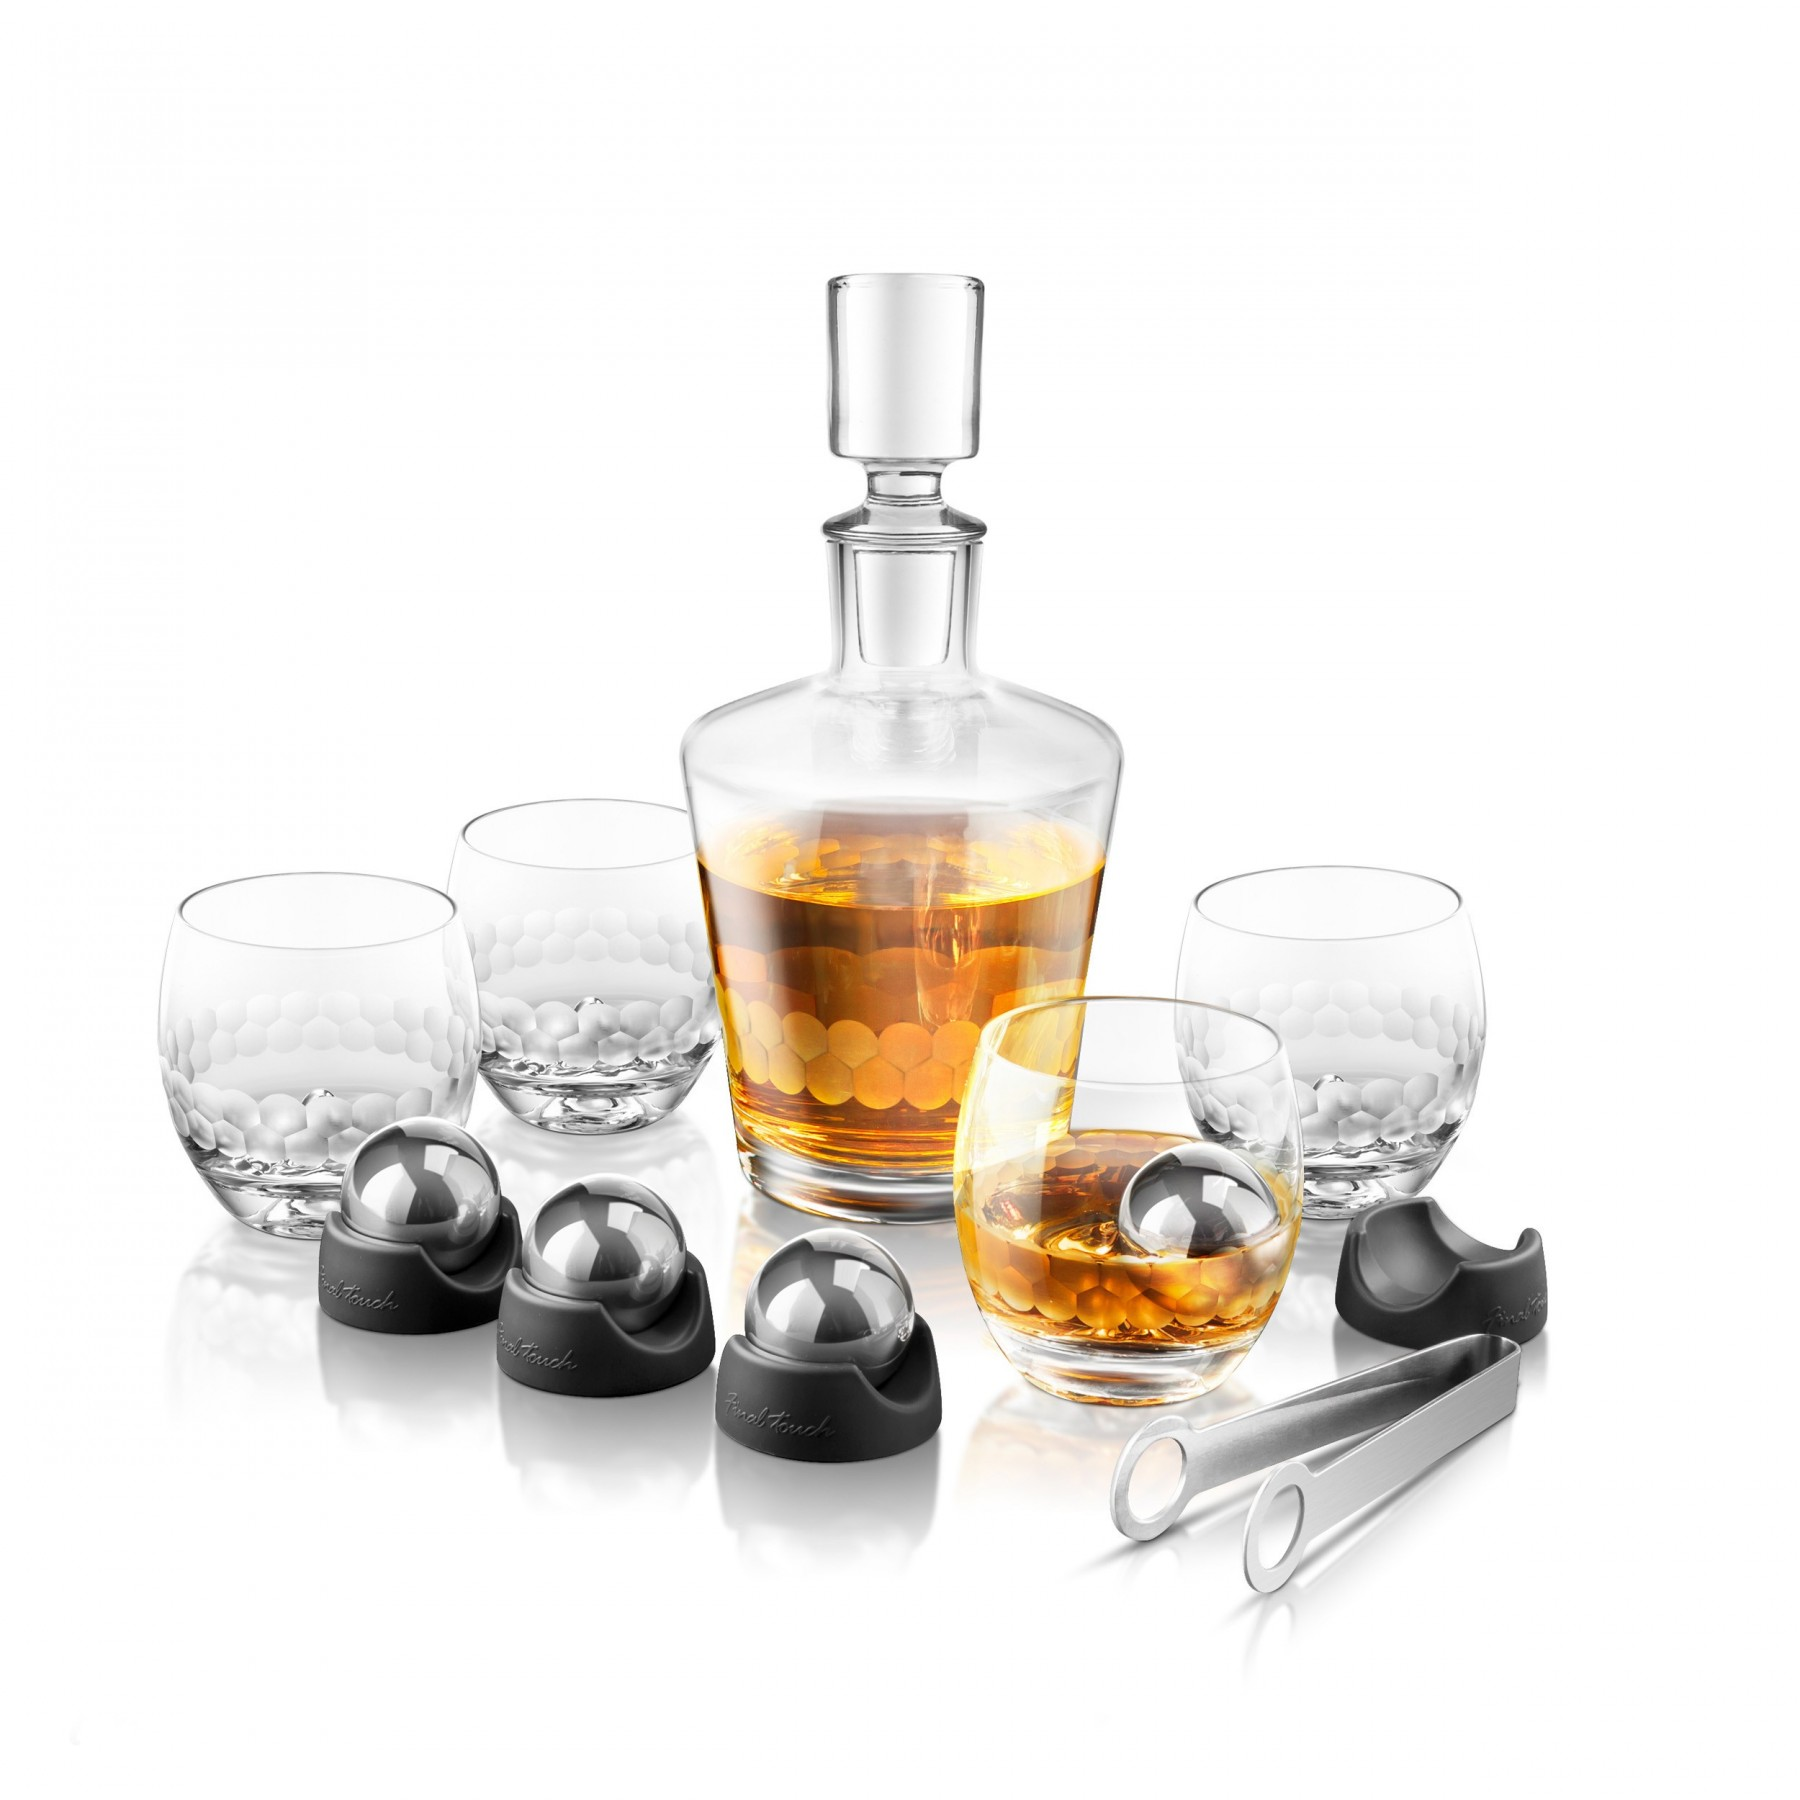 Brilliant decanter set for dining sets ideas with crystal decanter set